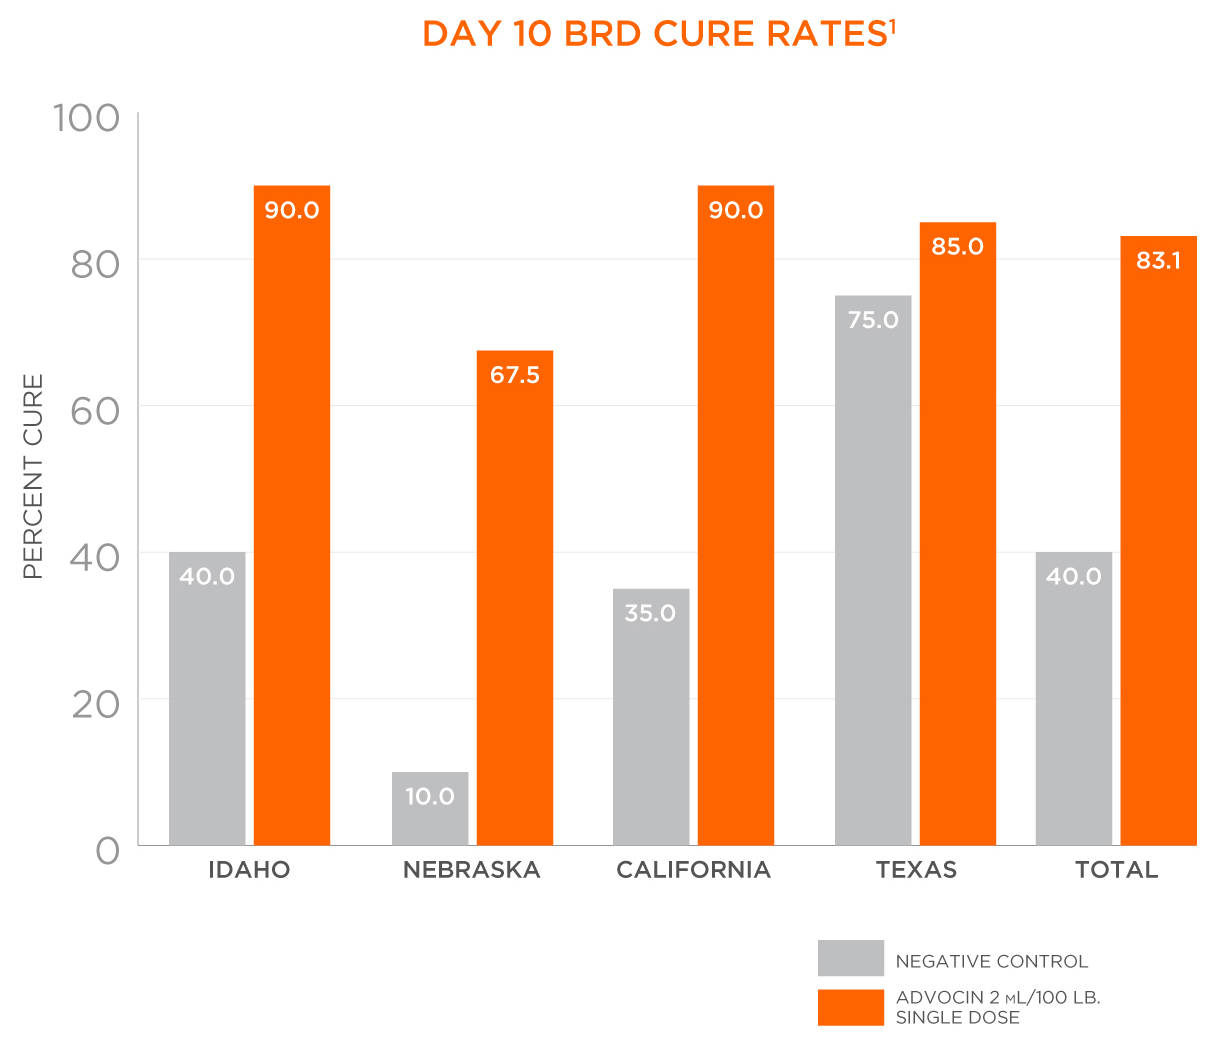 Advocin Day 10 BRD Cure Rate Chart